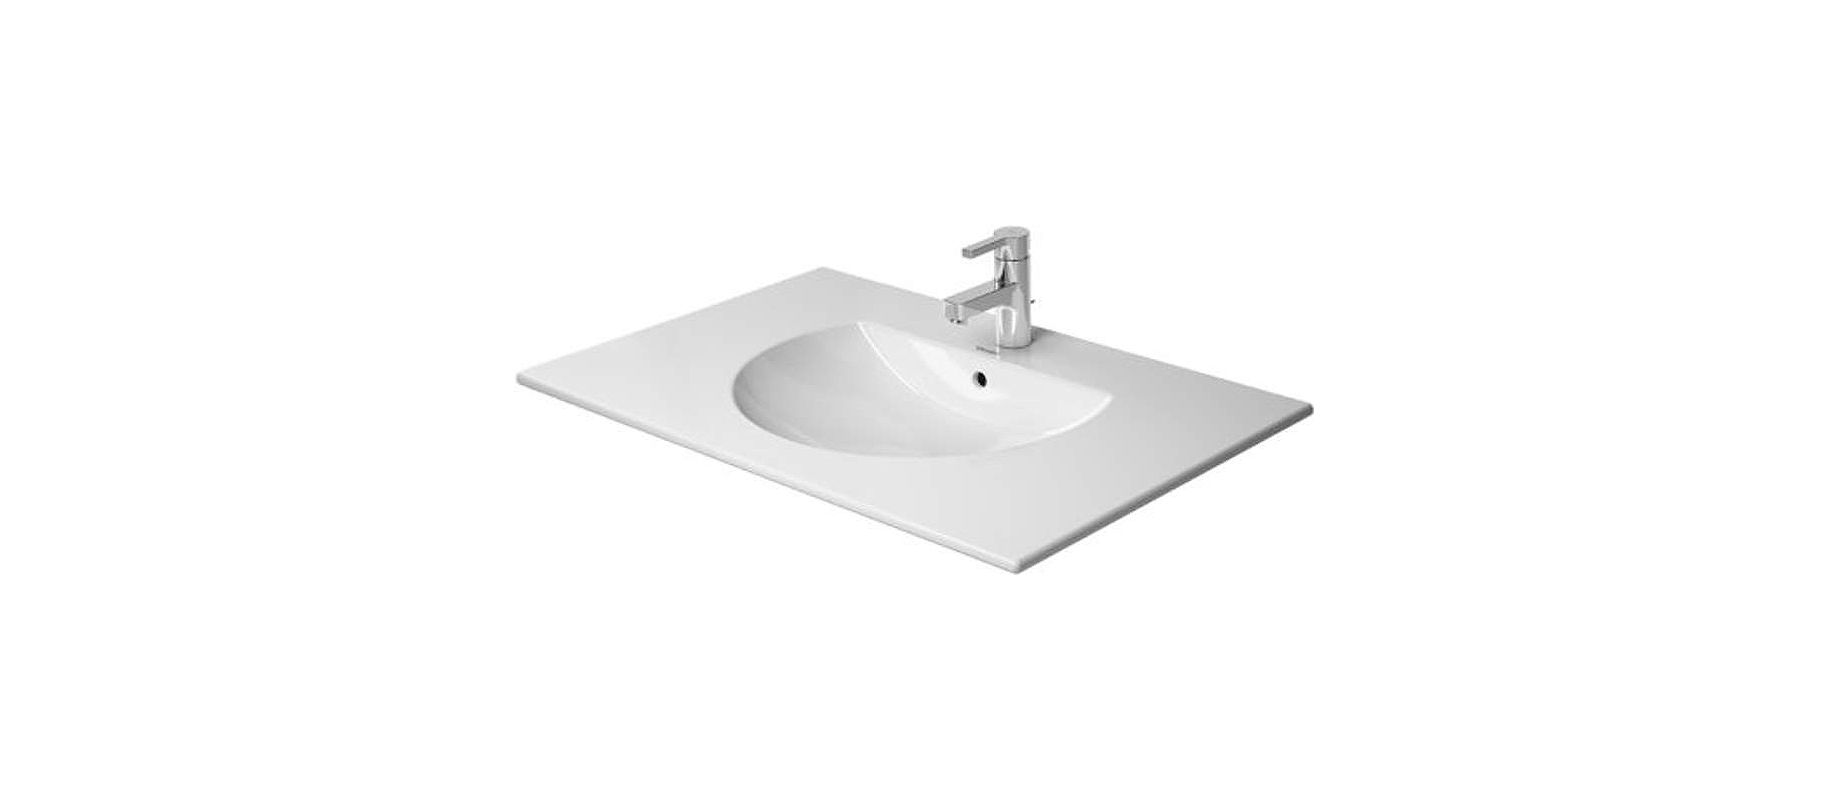 Duravit Bathroom Sink Faucetcom 0499830000 In White By Duravit